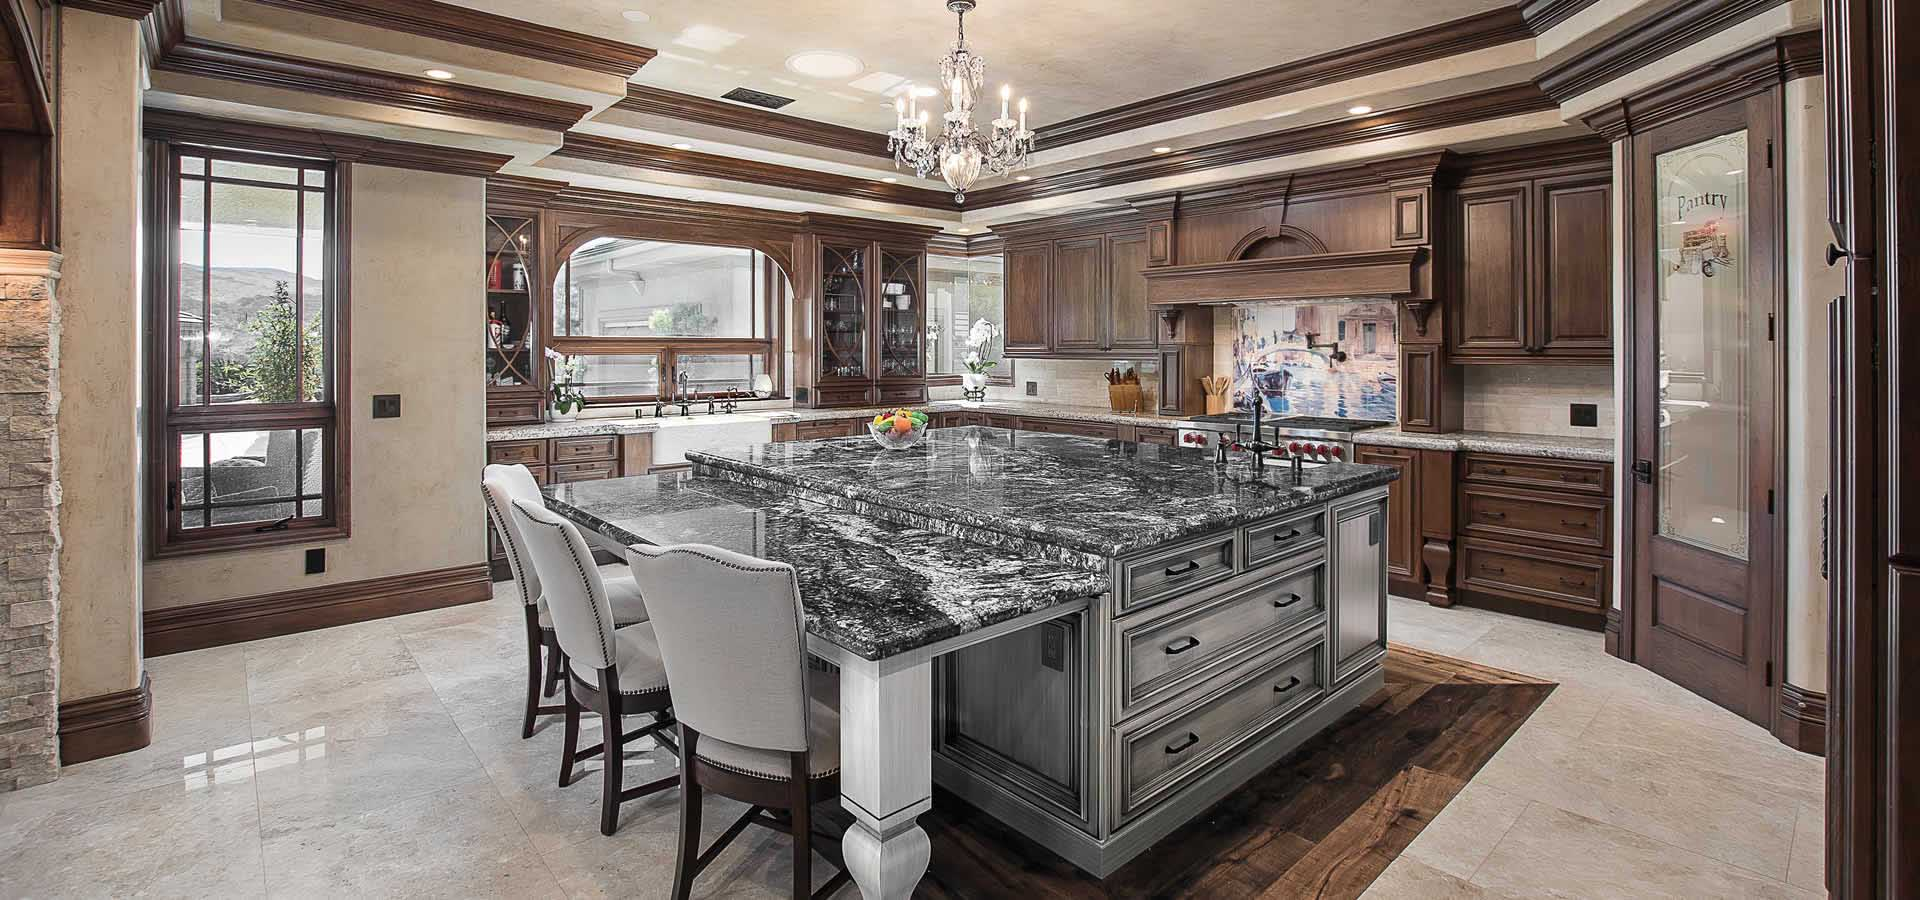 Full kitchen remodeling in San Clemente by Preferred Kitchen and Bath